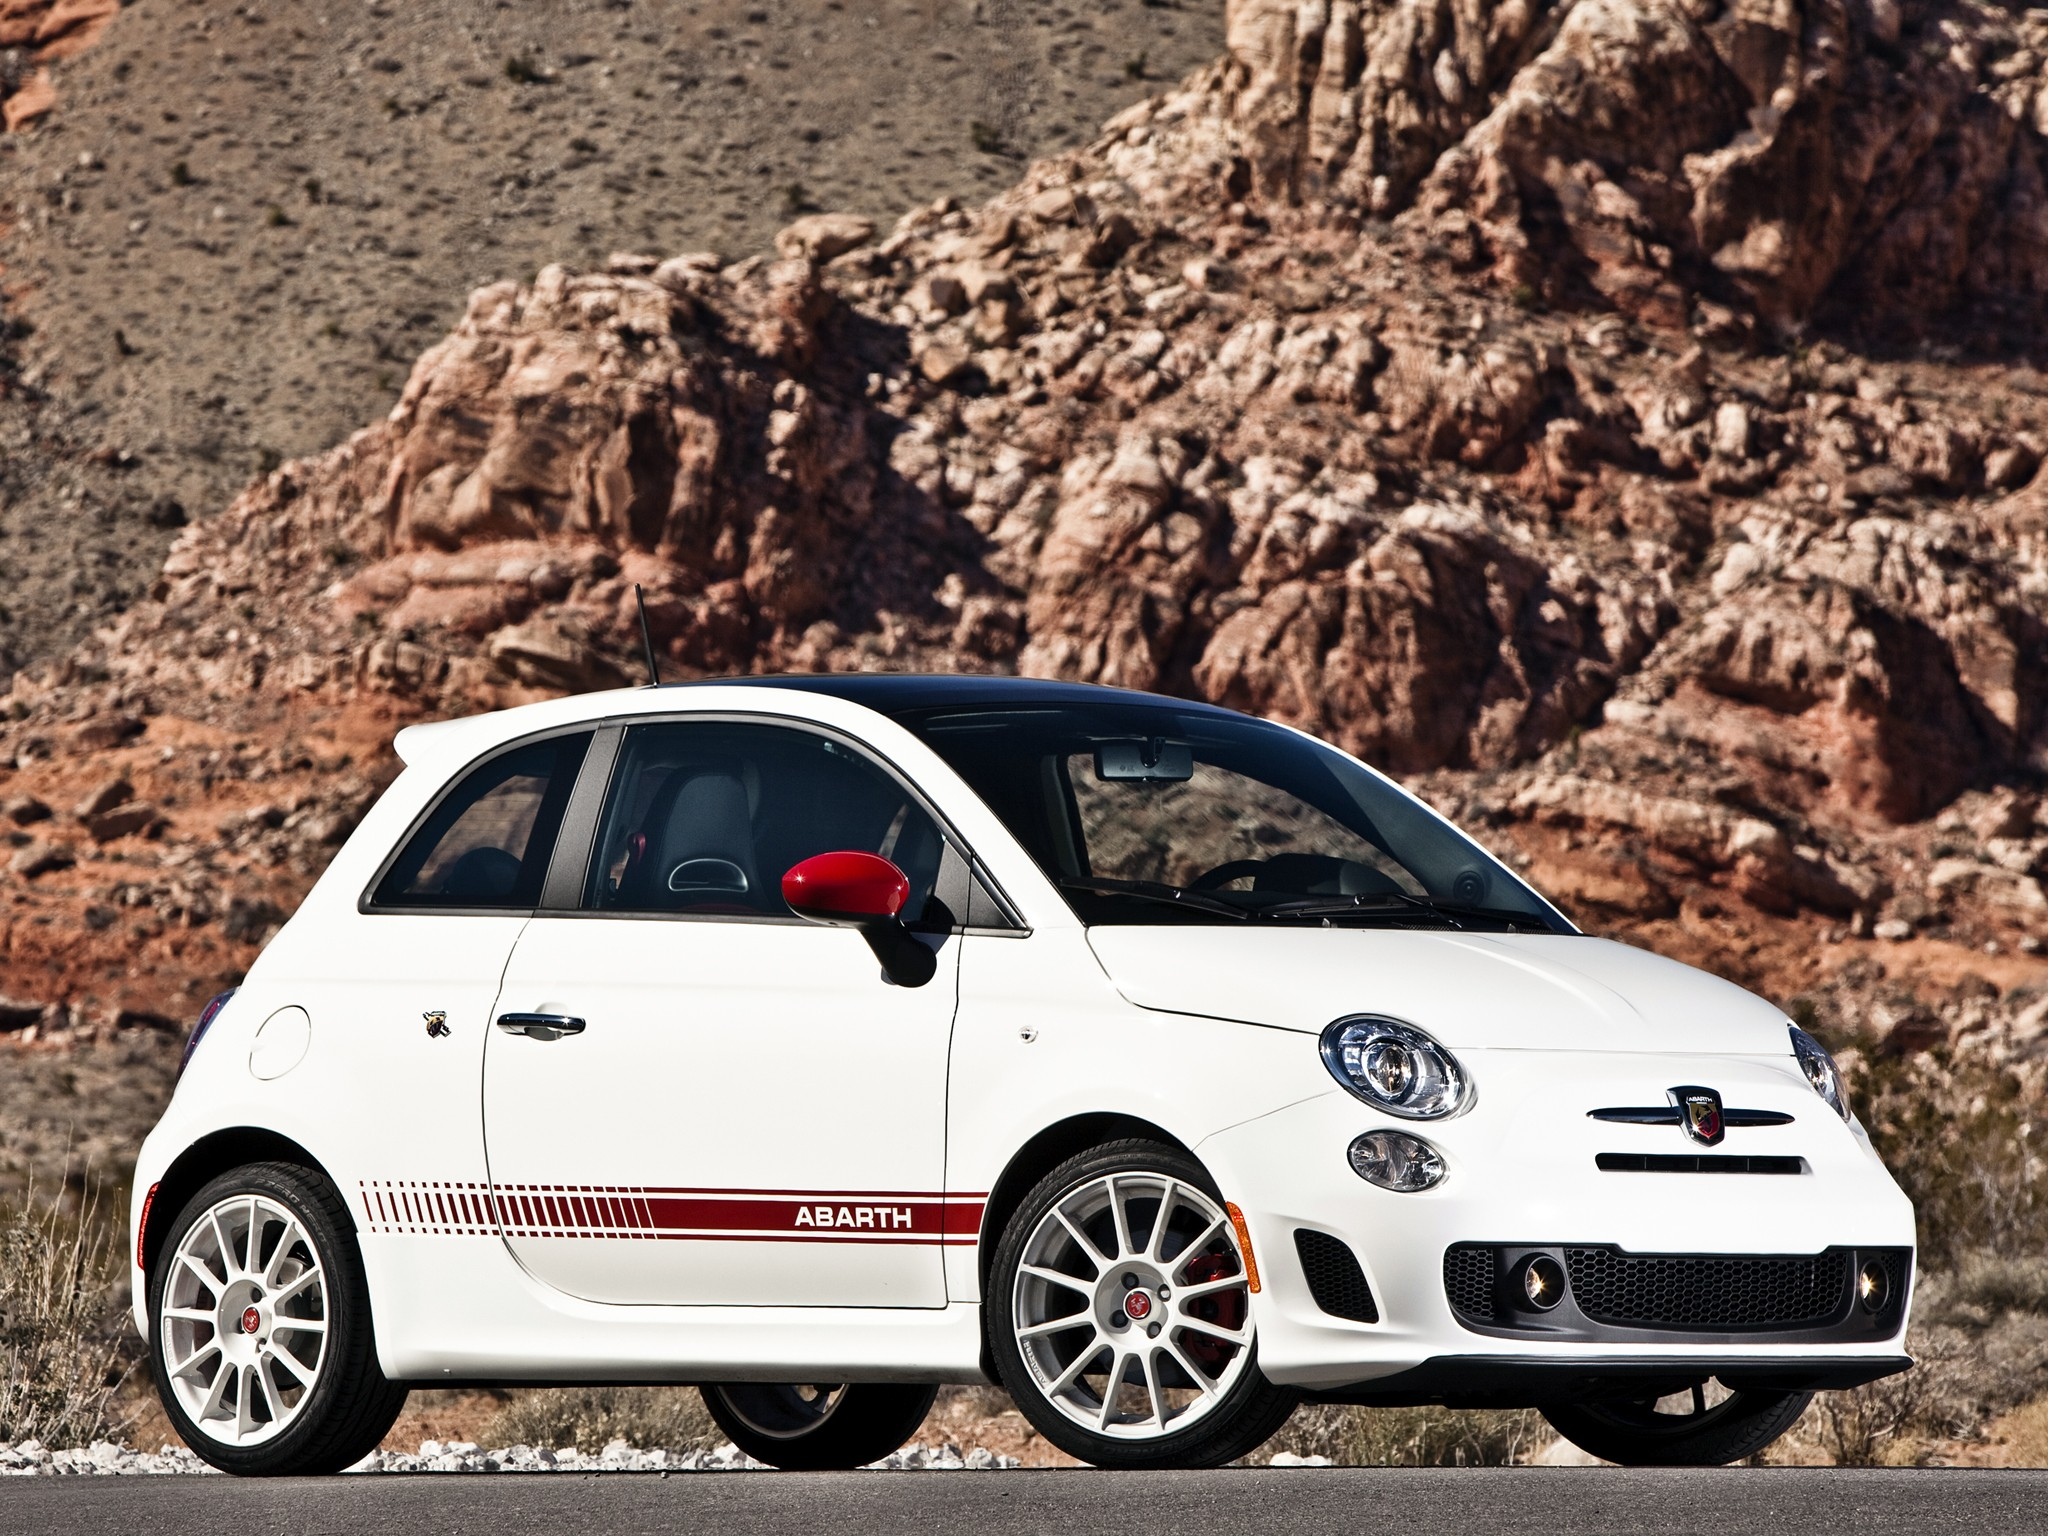 fiat 500 abarth specs 2008 2009 2010 2011 2012 2013 2014 2015 2016 2017 2018. Black Bedroom Furniture Sets. Home Design Ideas